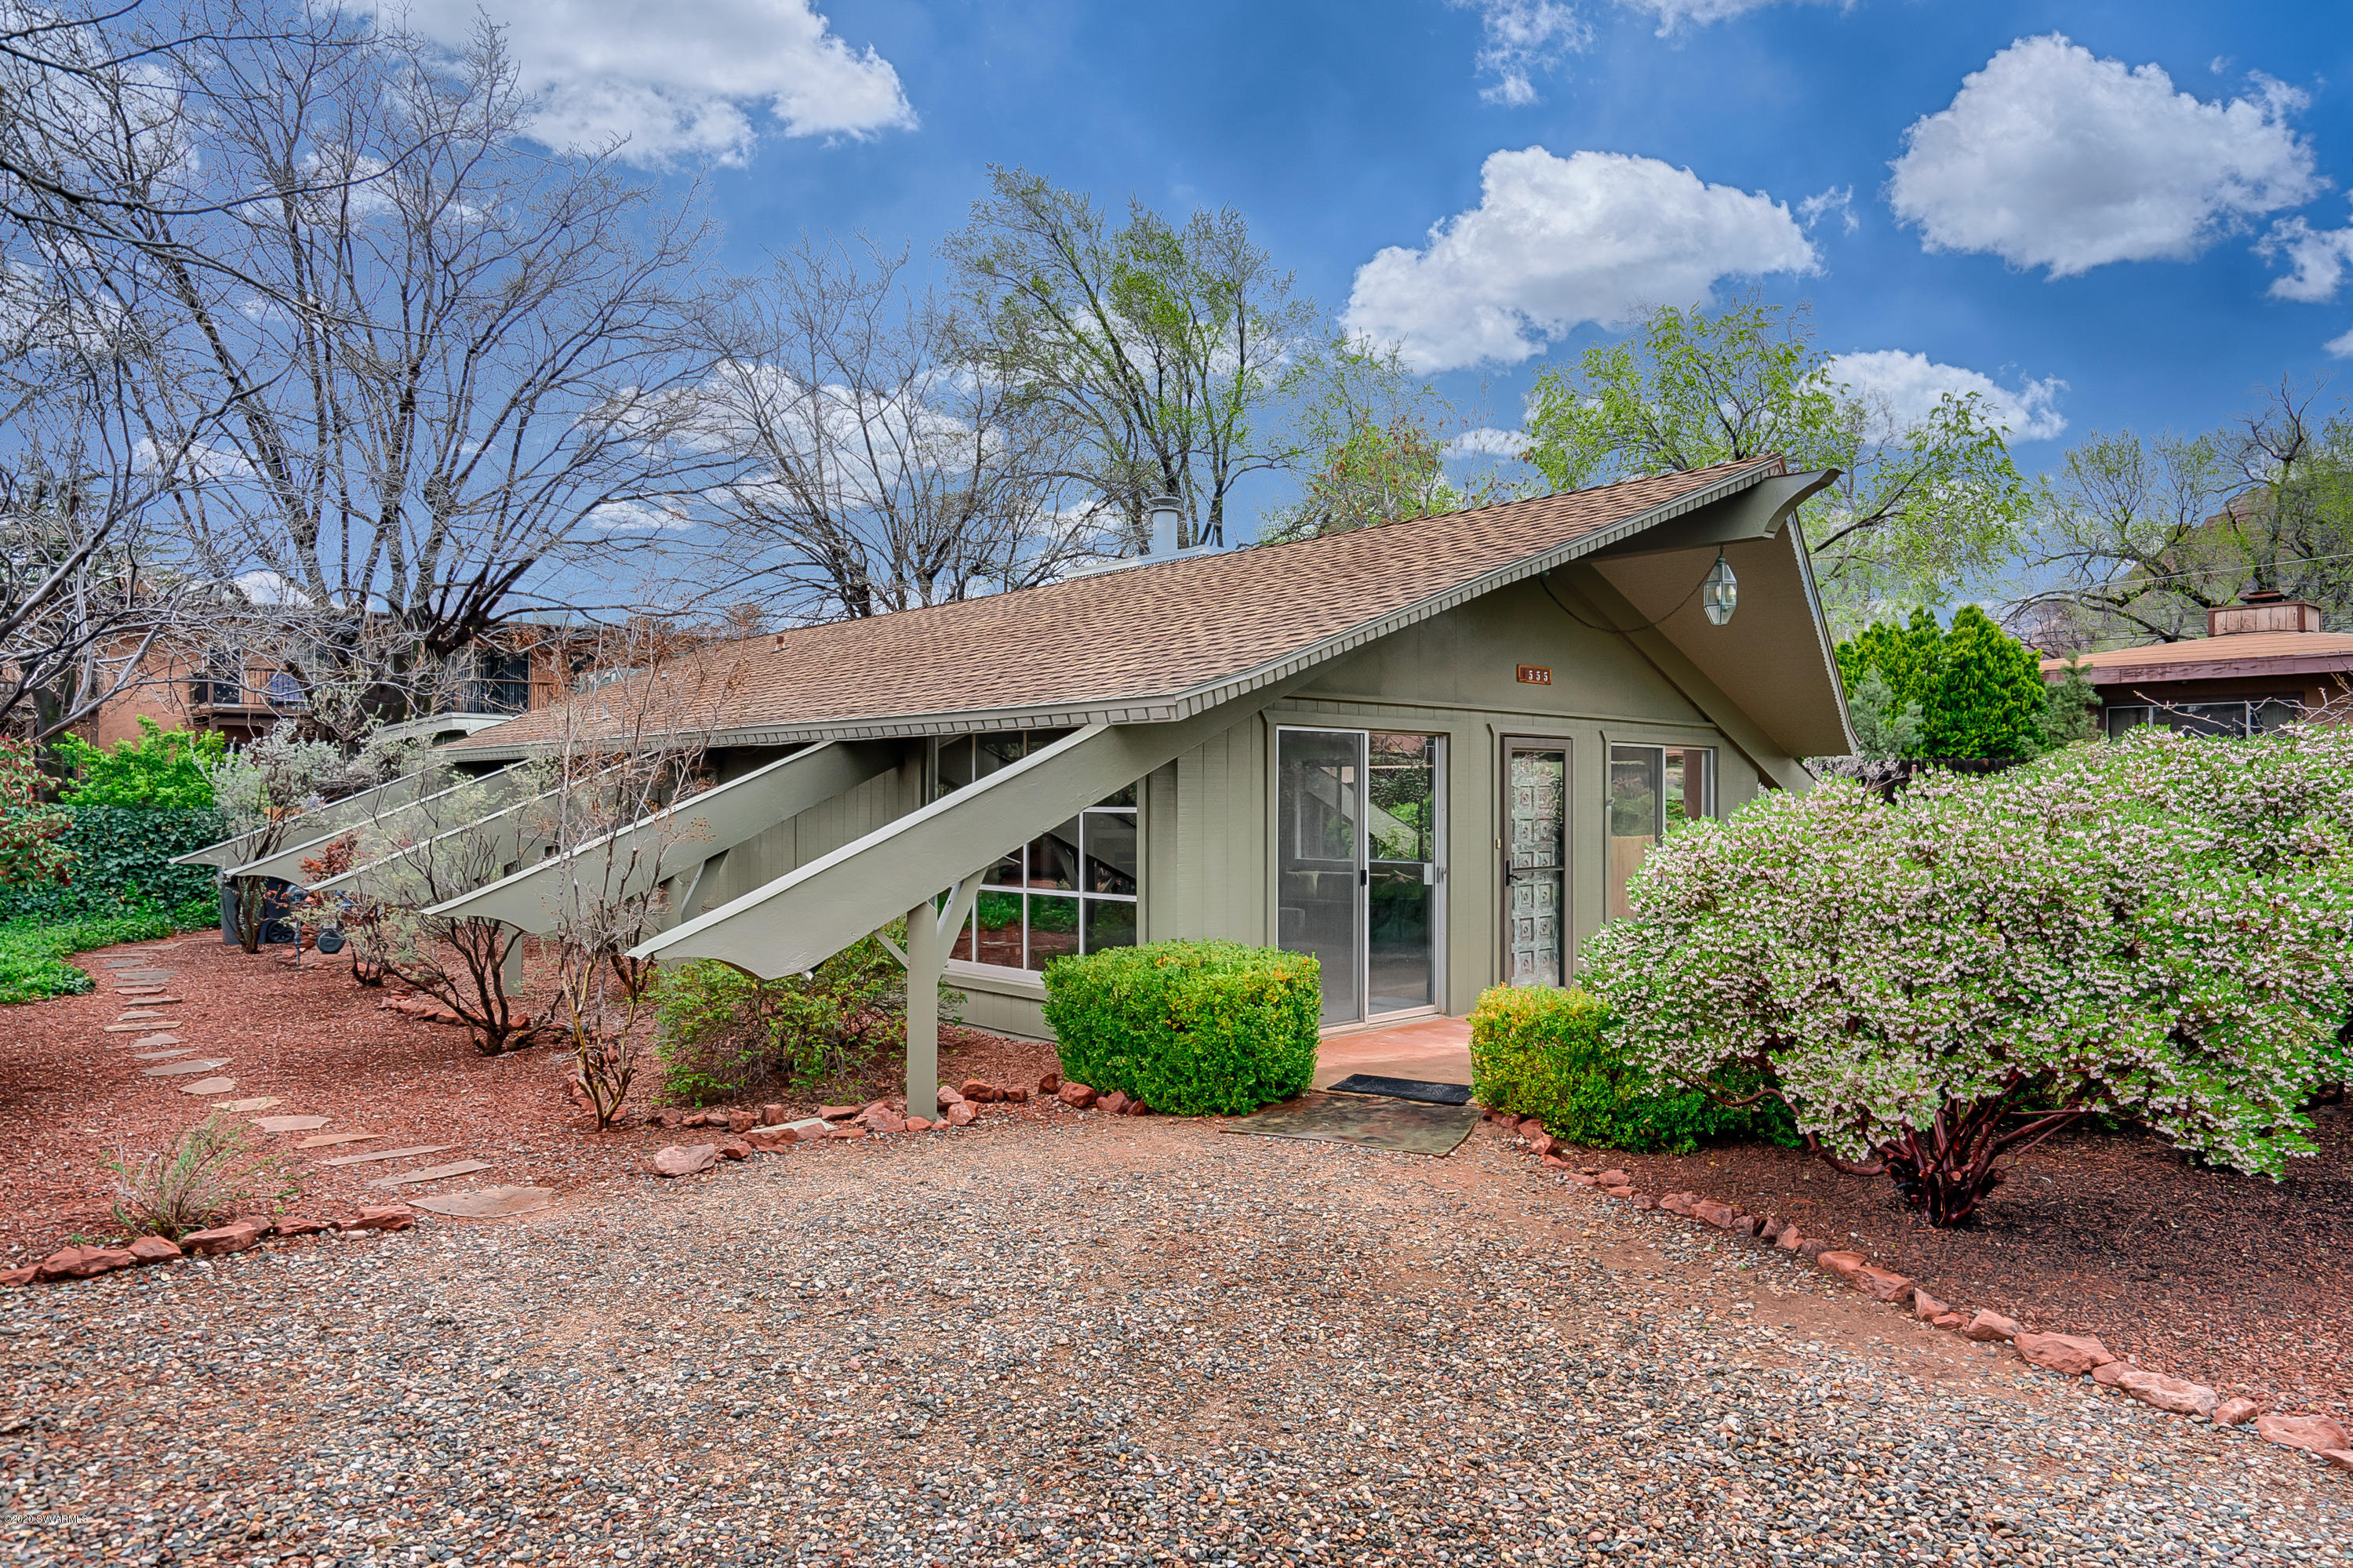 555 Sunset Lane Sedona, AZ 86336